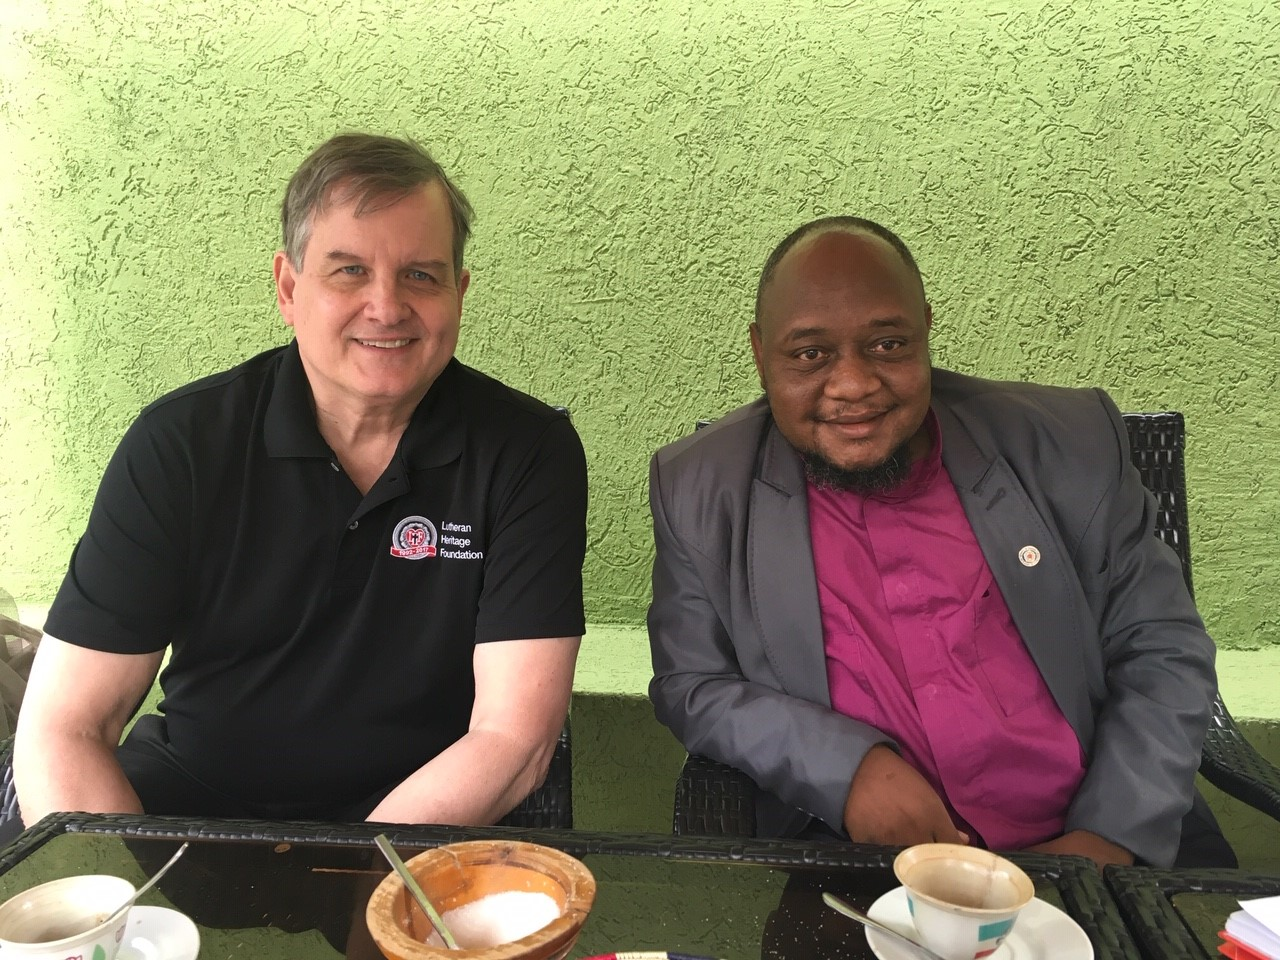 The Rev. Dr. Matthew Heise, Executive Director of Lutheran Heritage Foundation, and Bishop Peter Anibati of the Evangelical Lutheran Church of South Sudan / Sudan. Used with permission